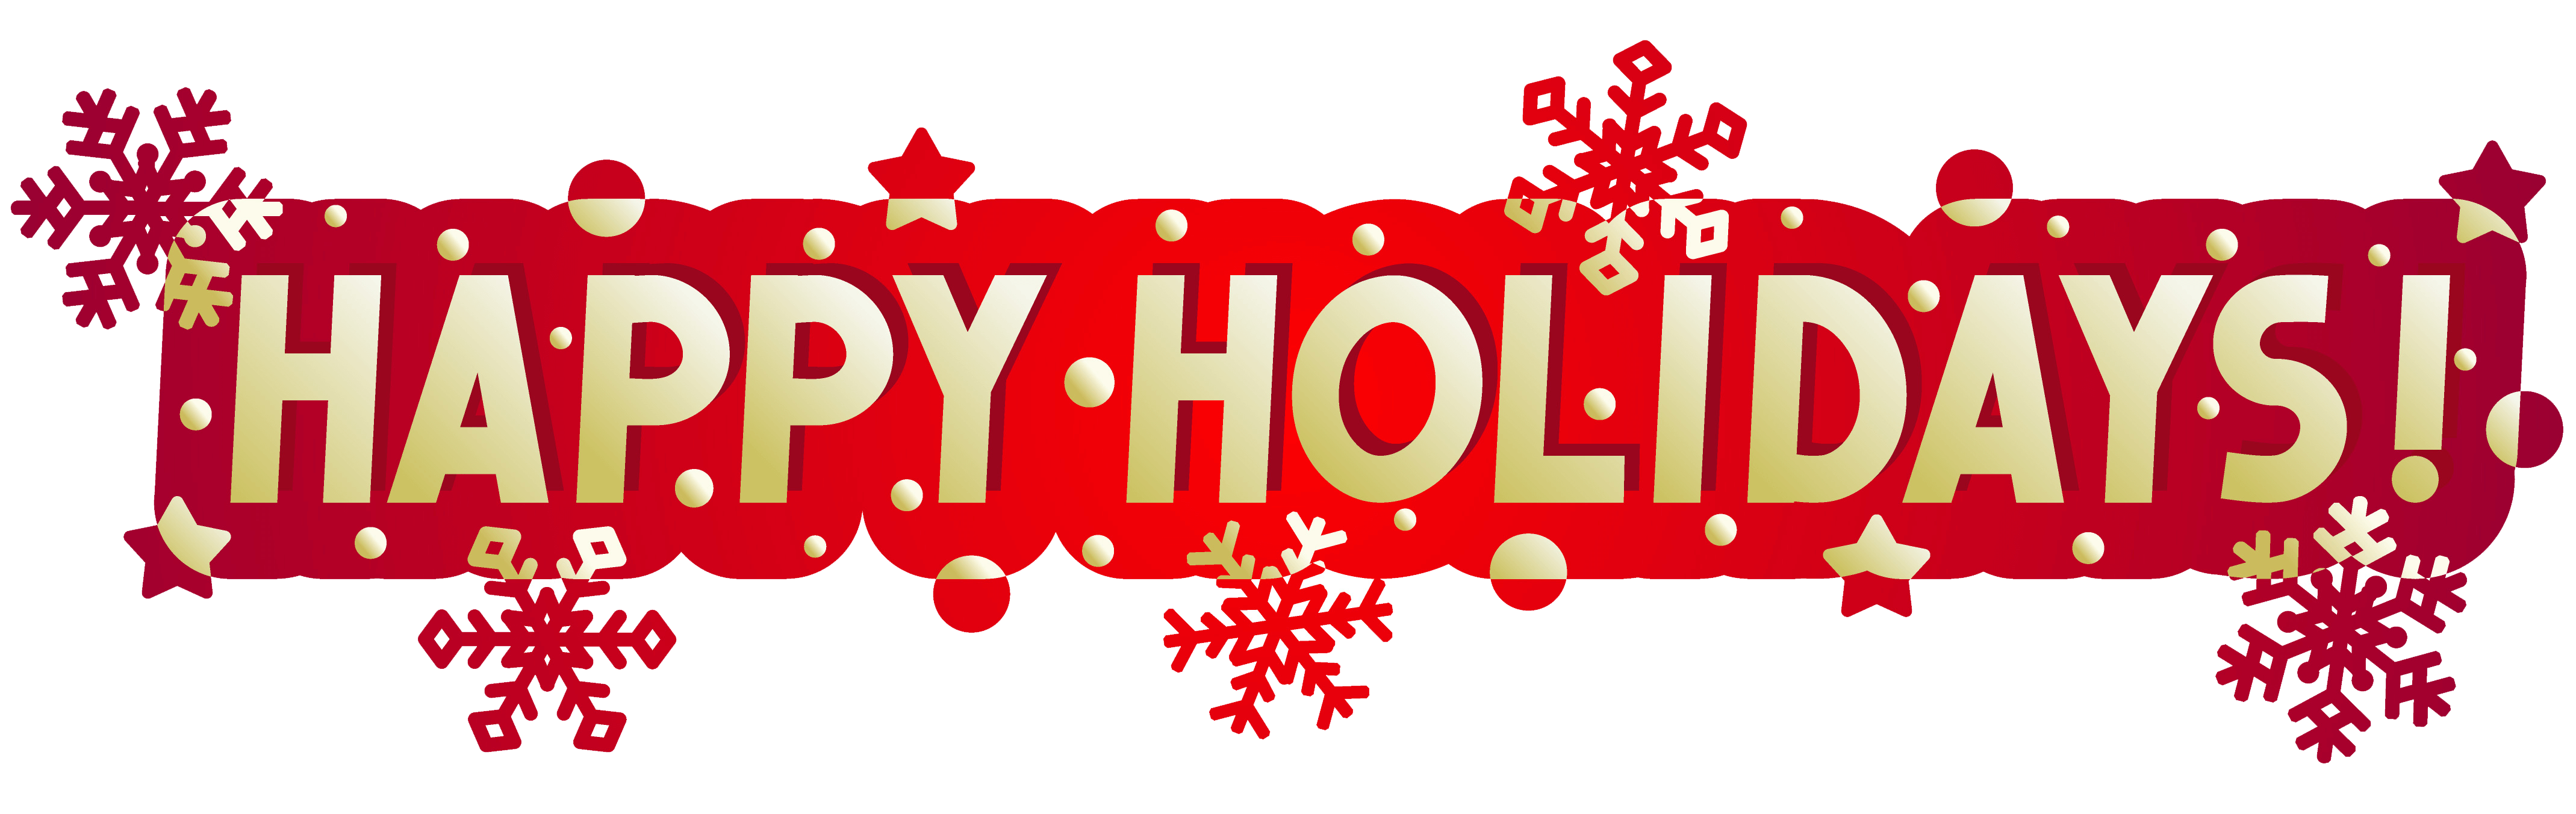 Happy holidays clipart vintage. Junction image